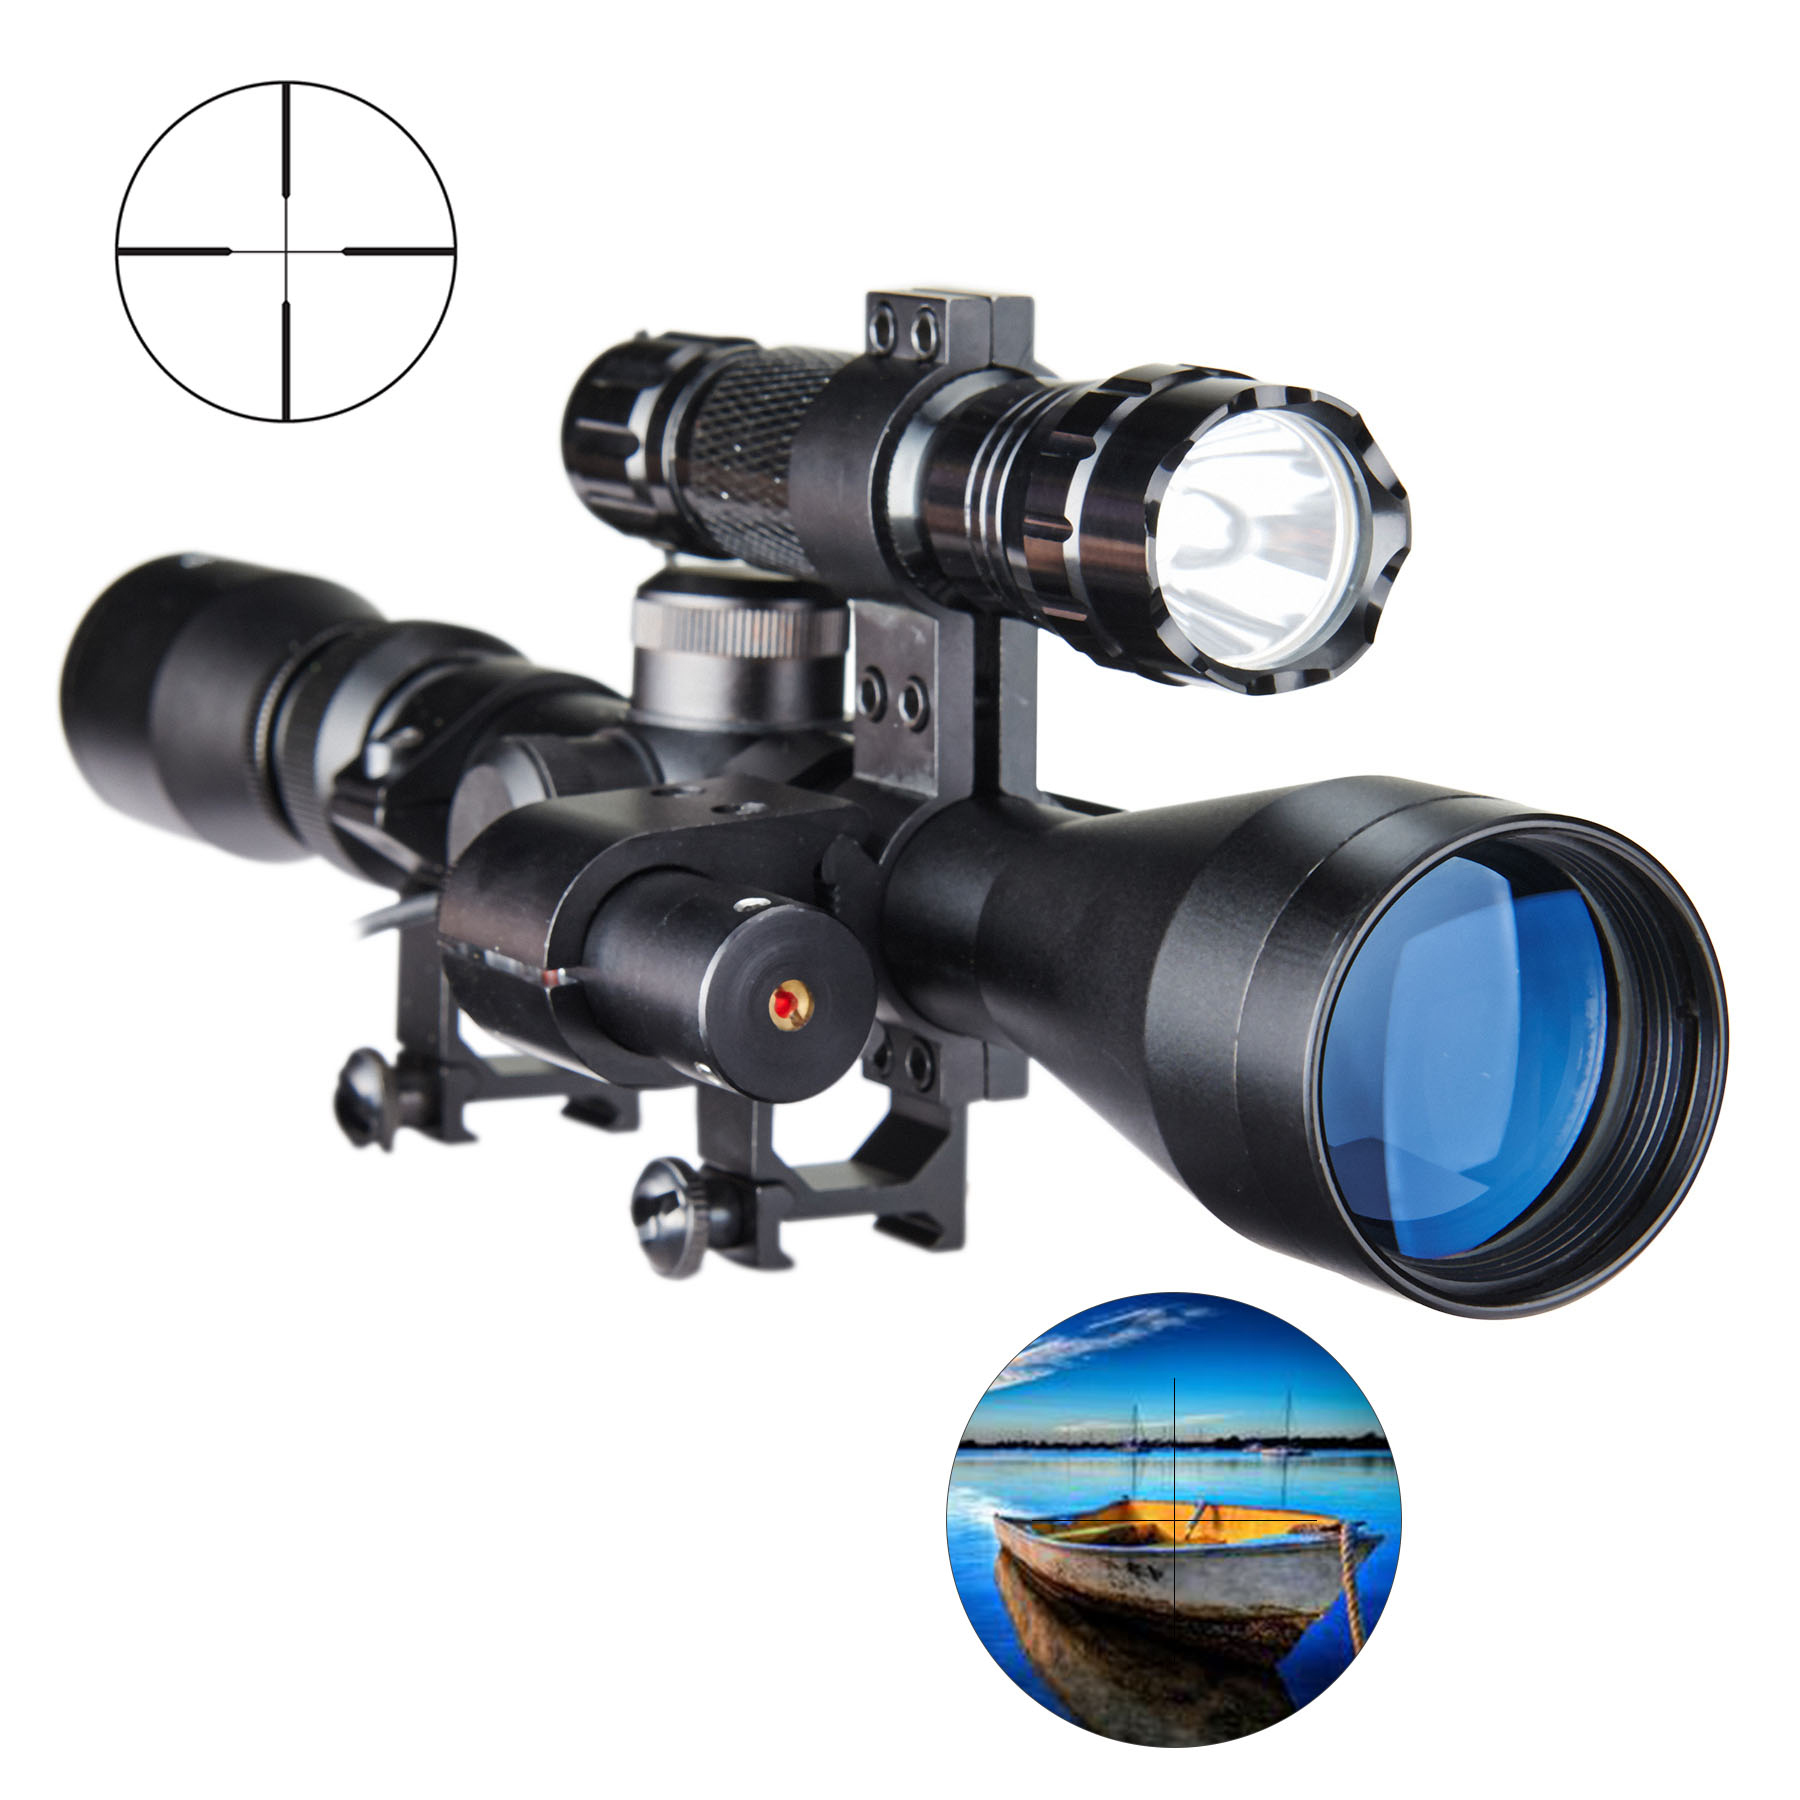 3 in 1 3-9X40 Optical Hunting Rifle Scope Combo with Red Laser & Torch by